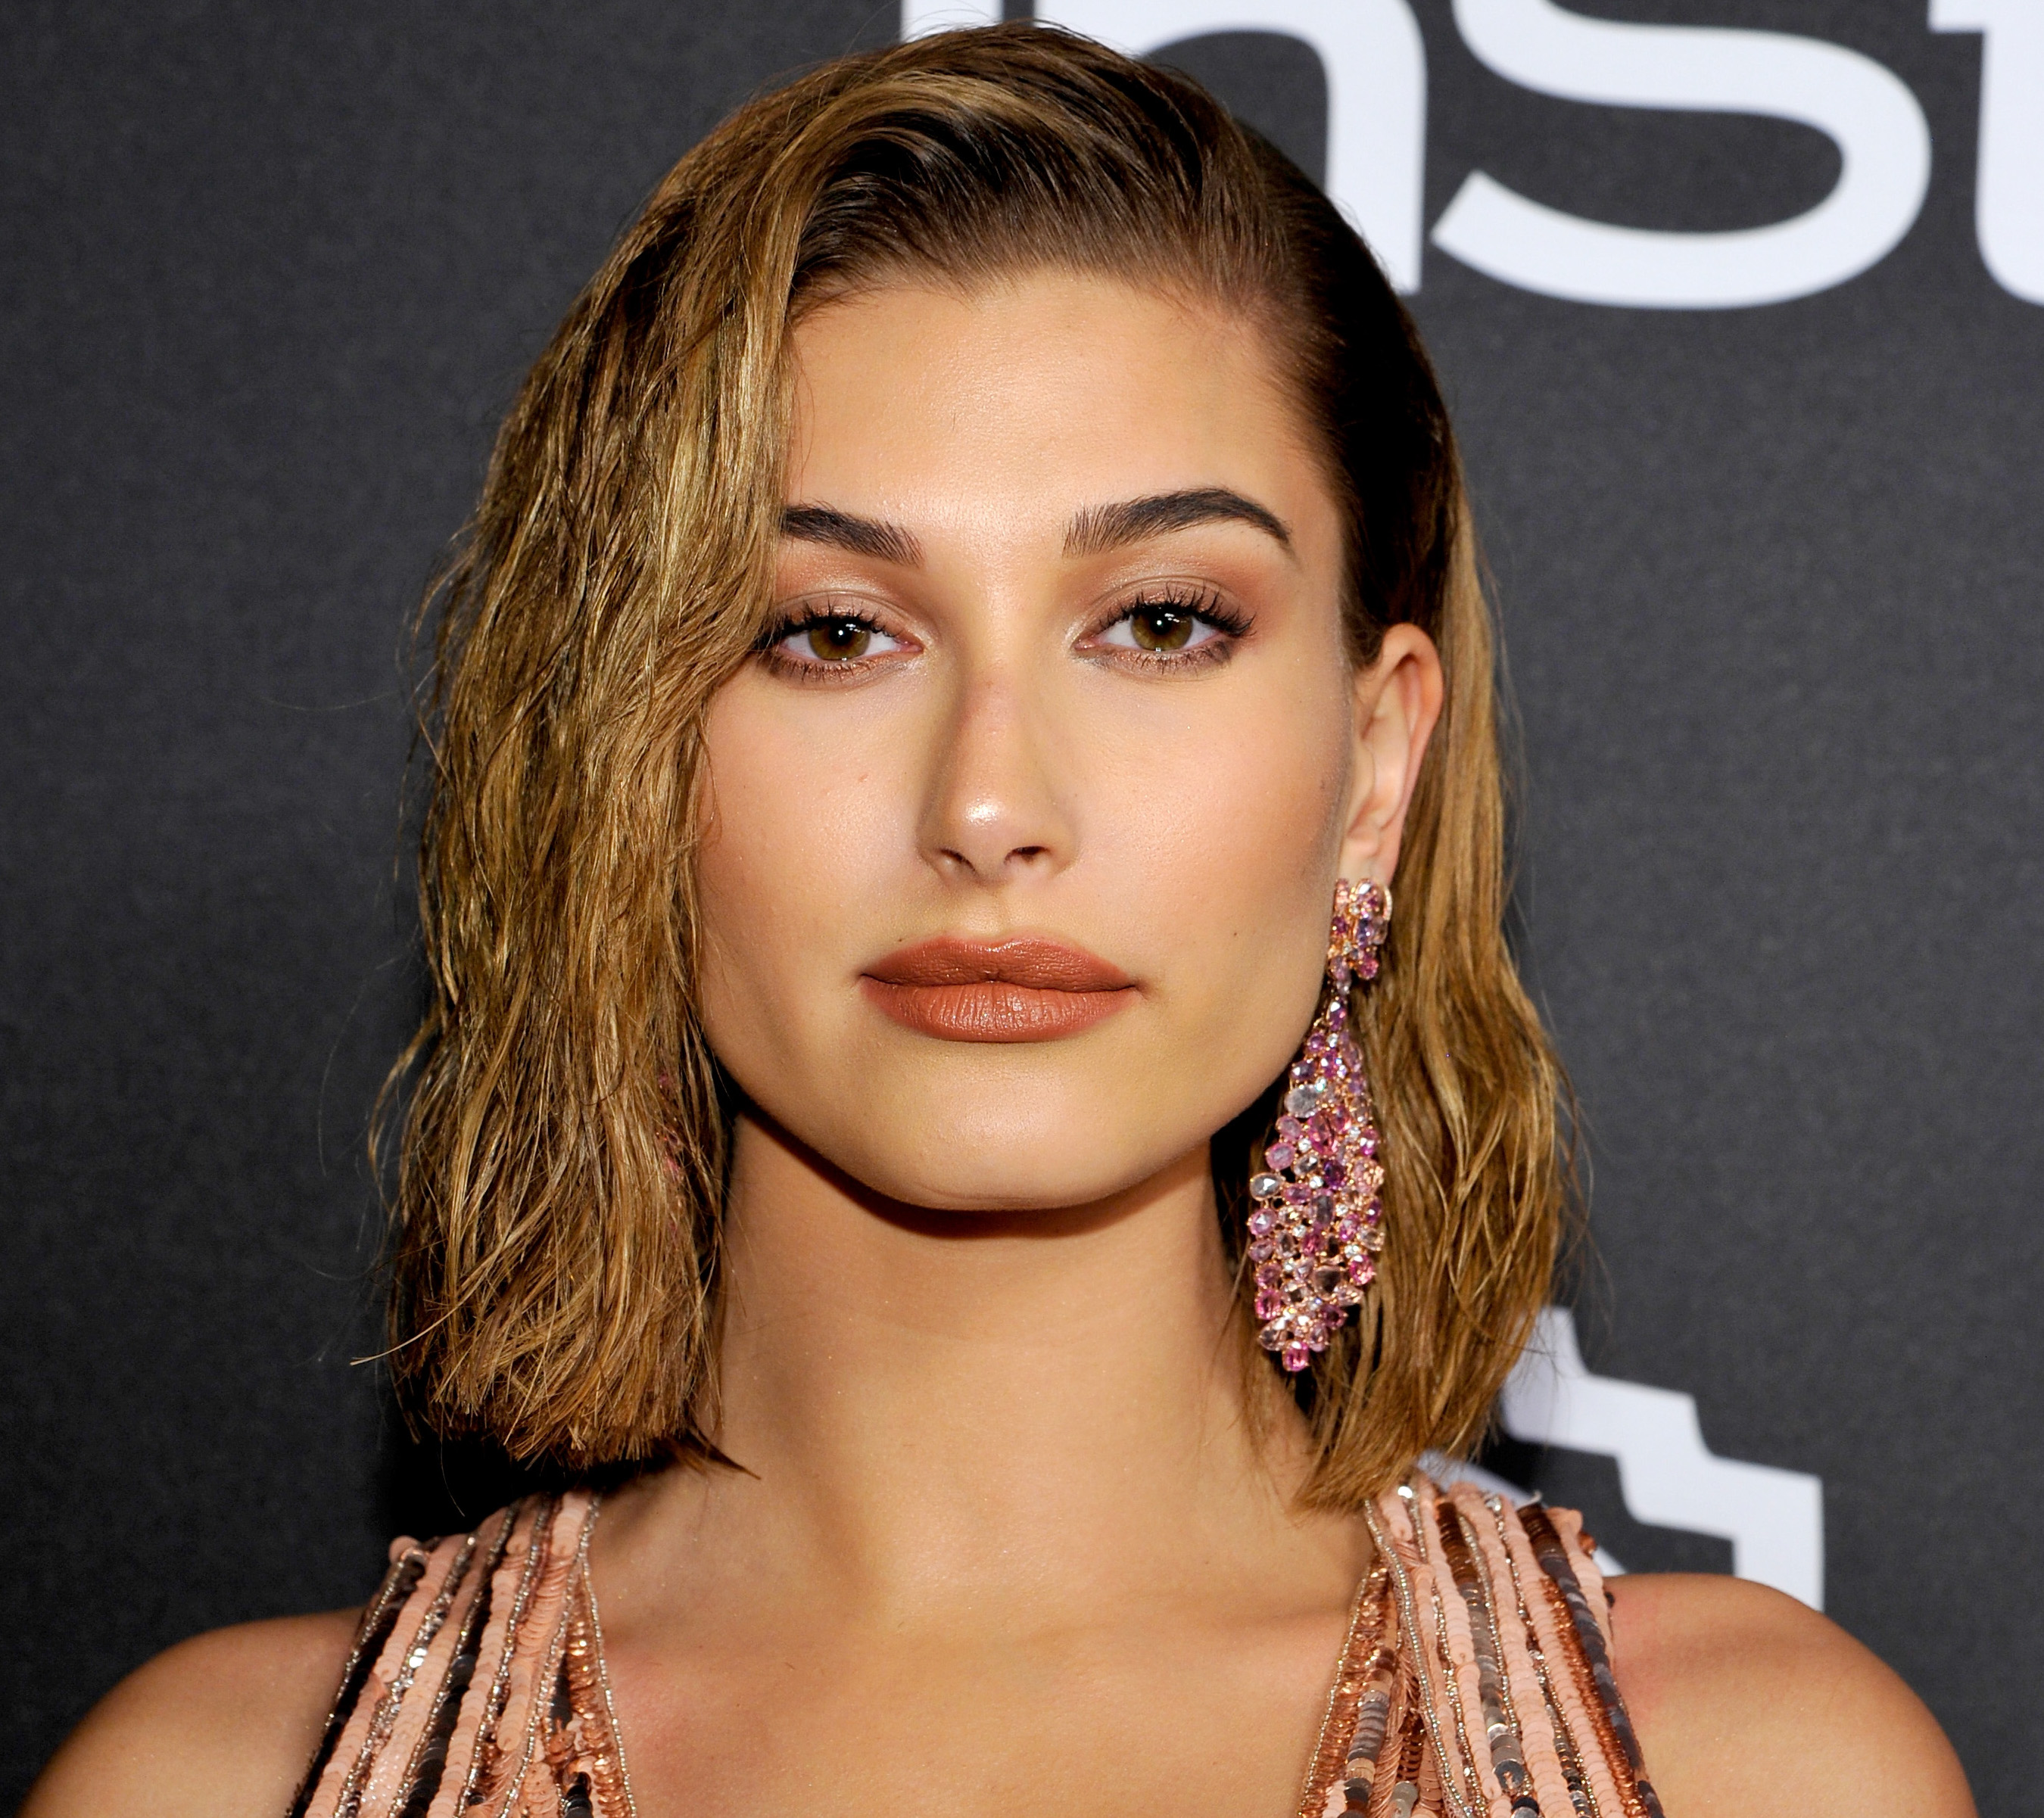 Hailey Baldwin just got two new tiny tattoos on her back and neck